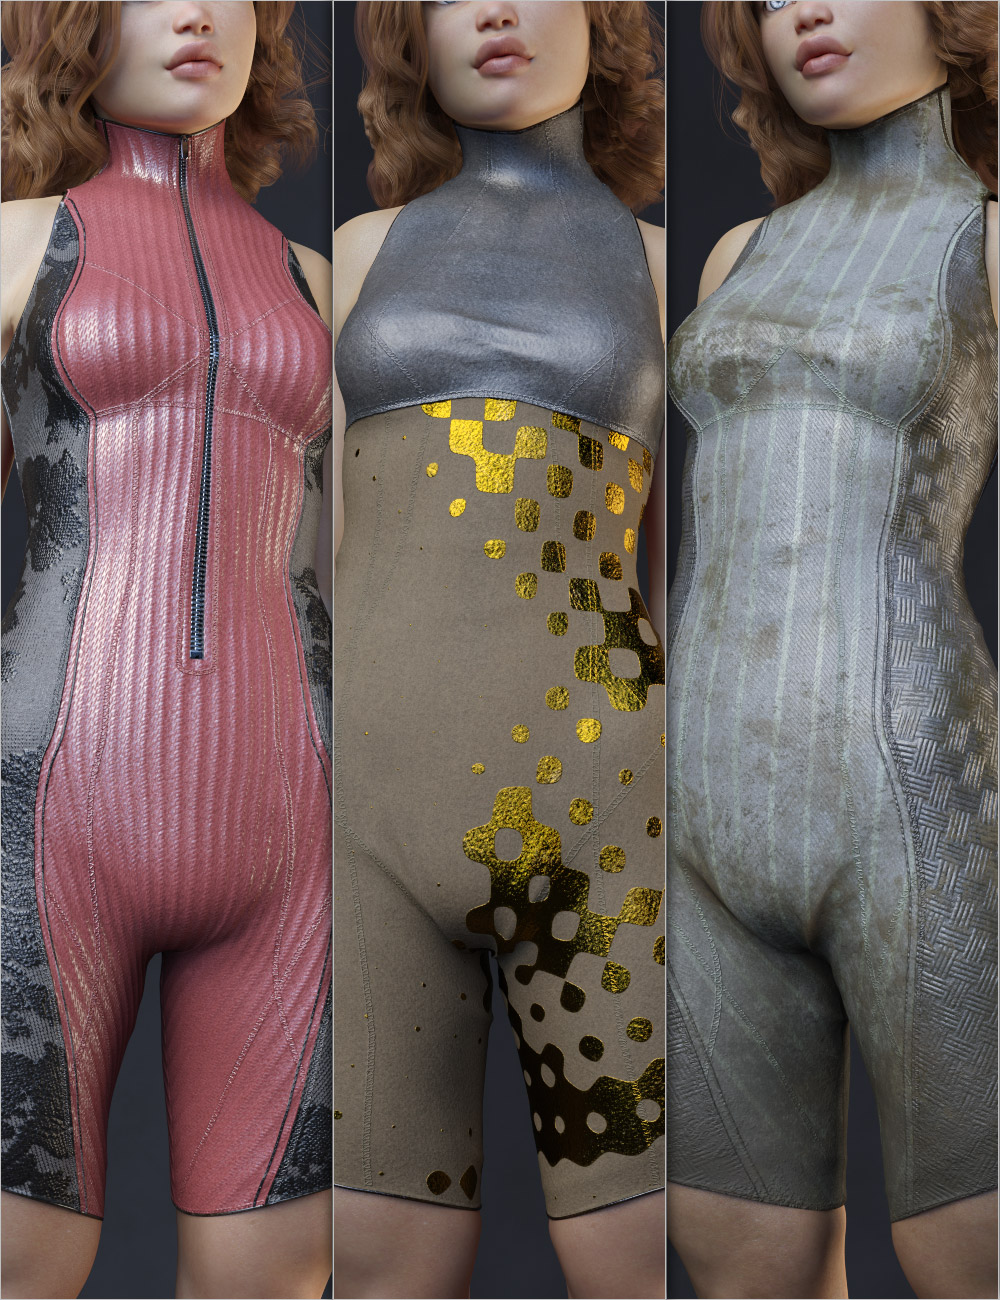 Helix Alpha Outfit for Genesis 8 Female(s) by: Aeon Soul, 3D Models by Daz 3D